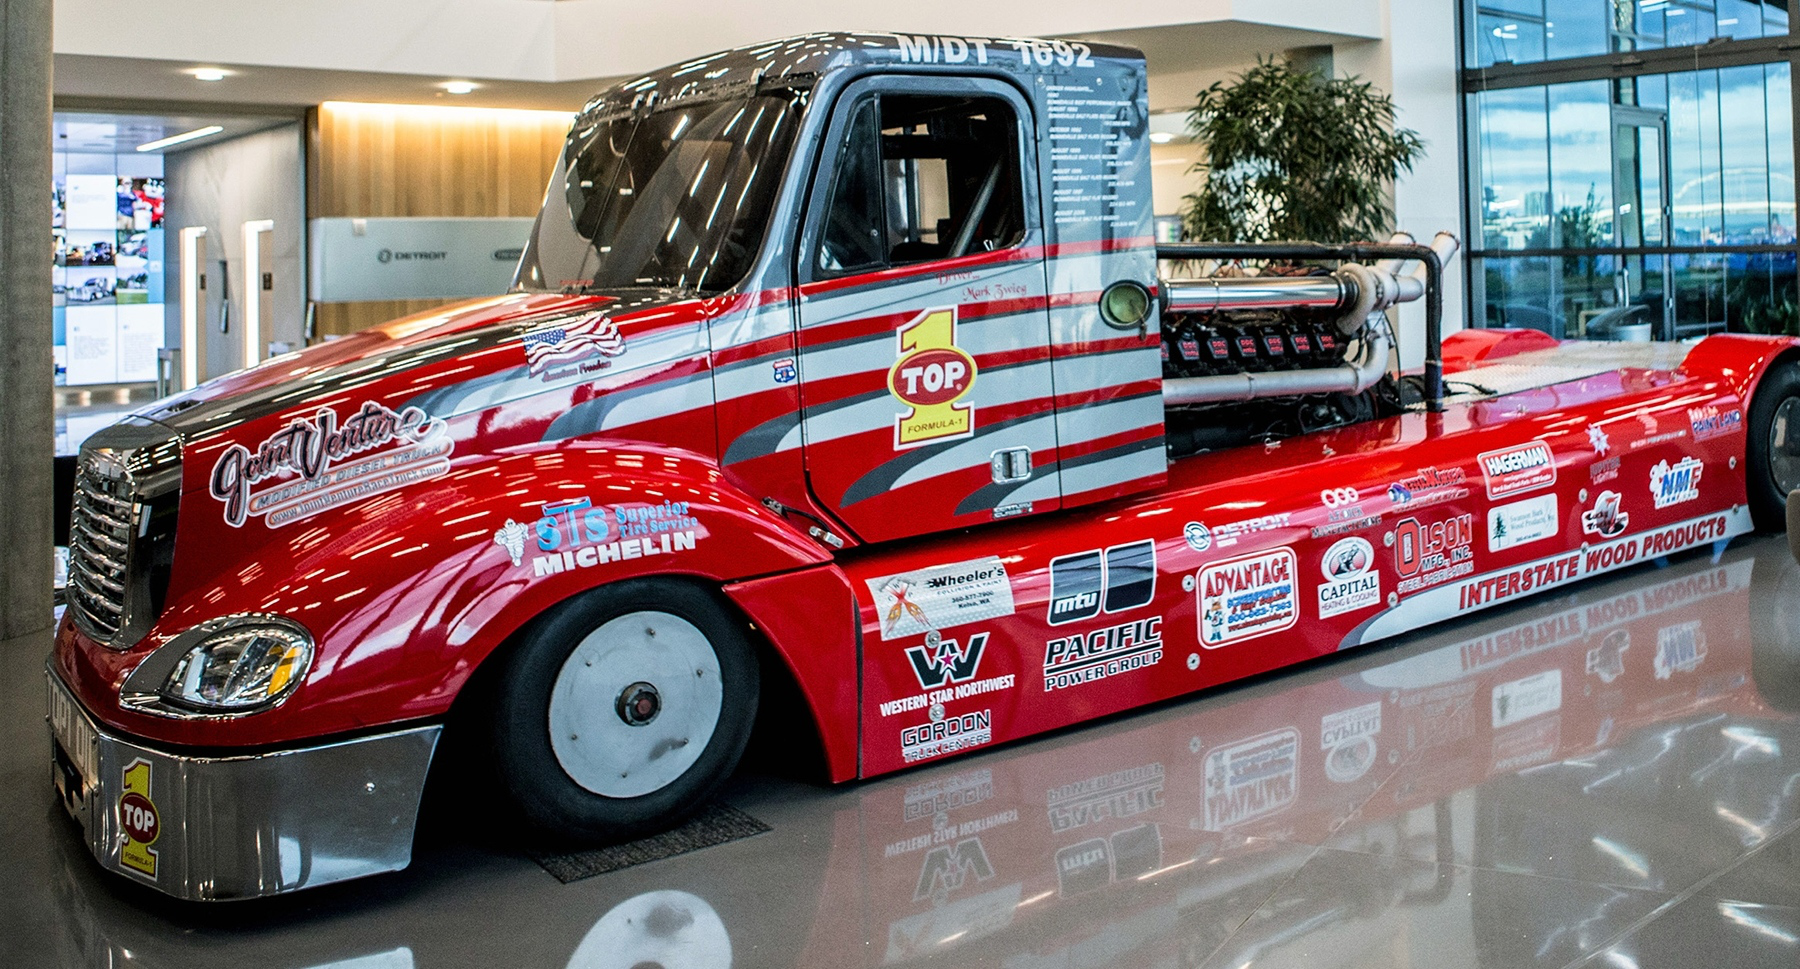 Fastest Diesel Truck >> The Fastest Diesel Truck In The World Gets New Paint Job